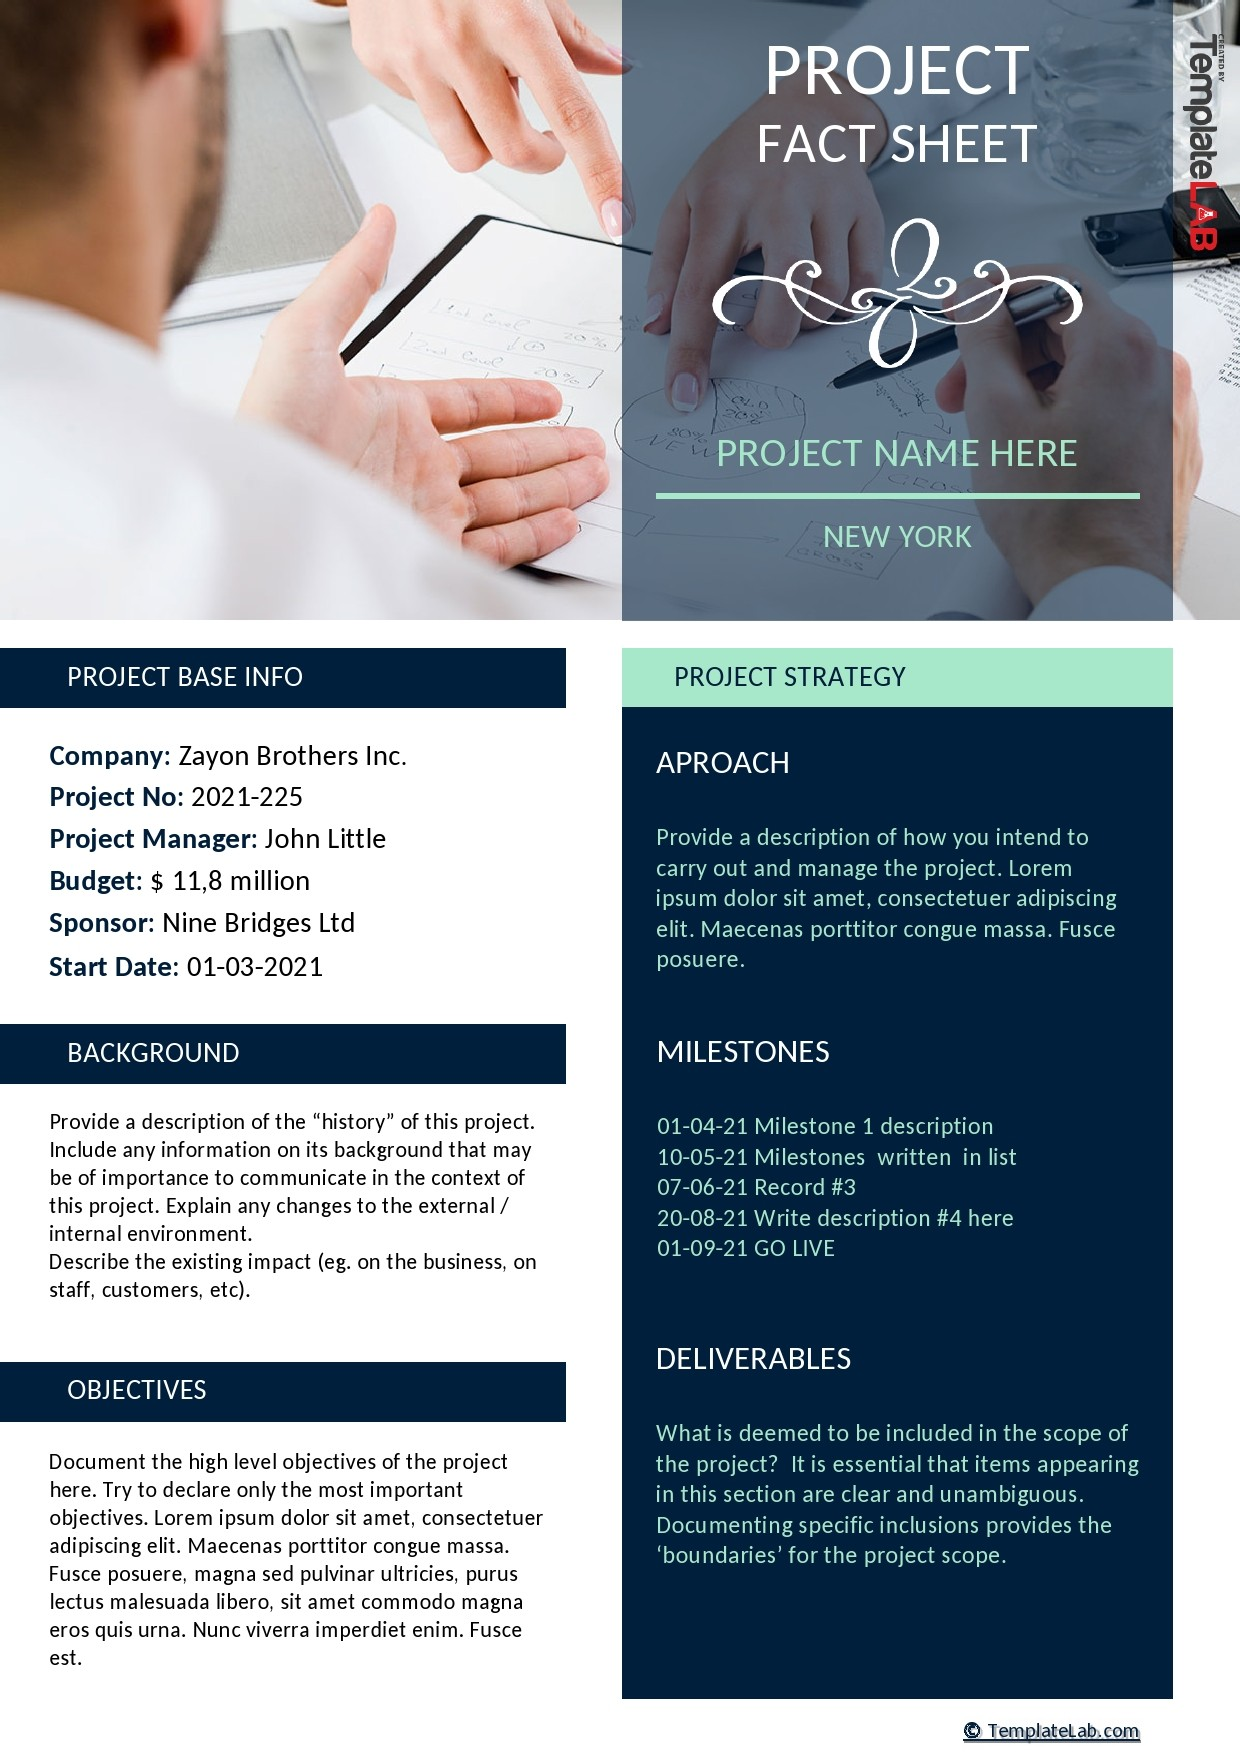 Free Project Fact Sheet Template - TemplateLab.com